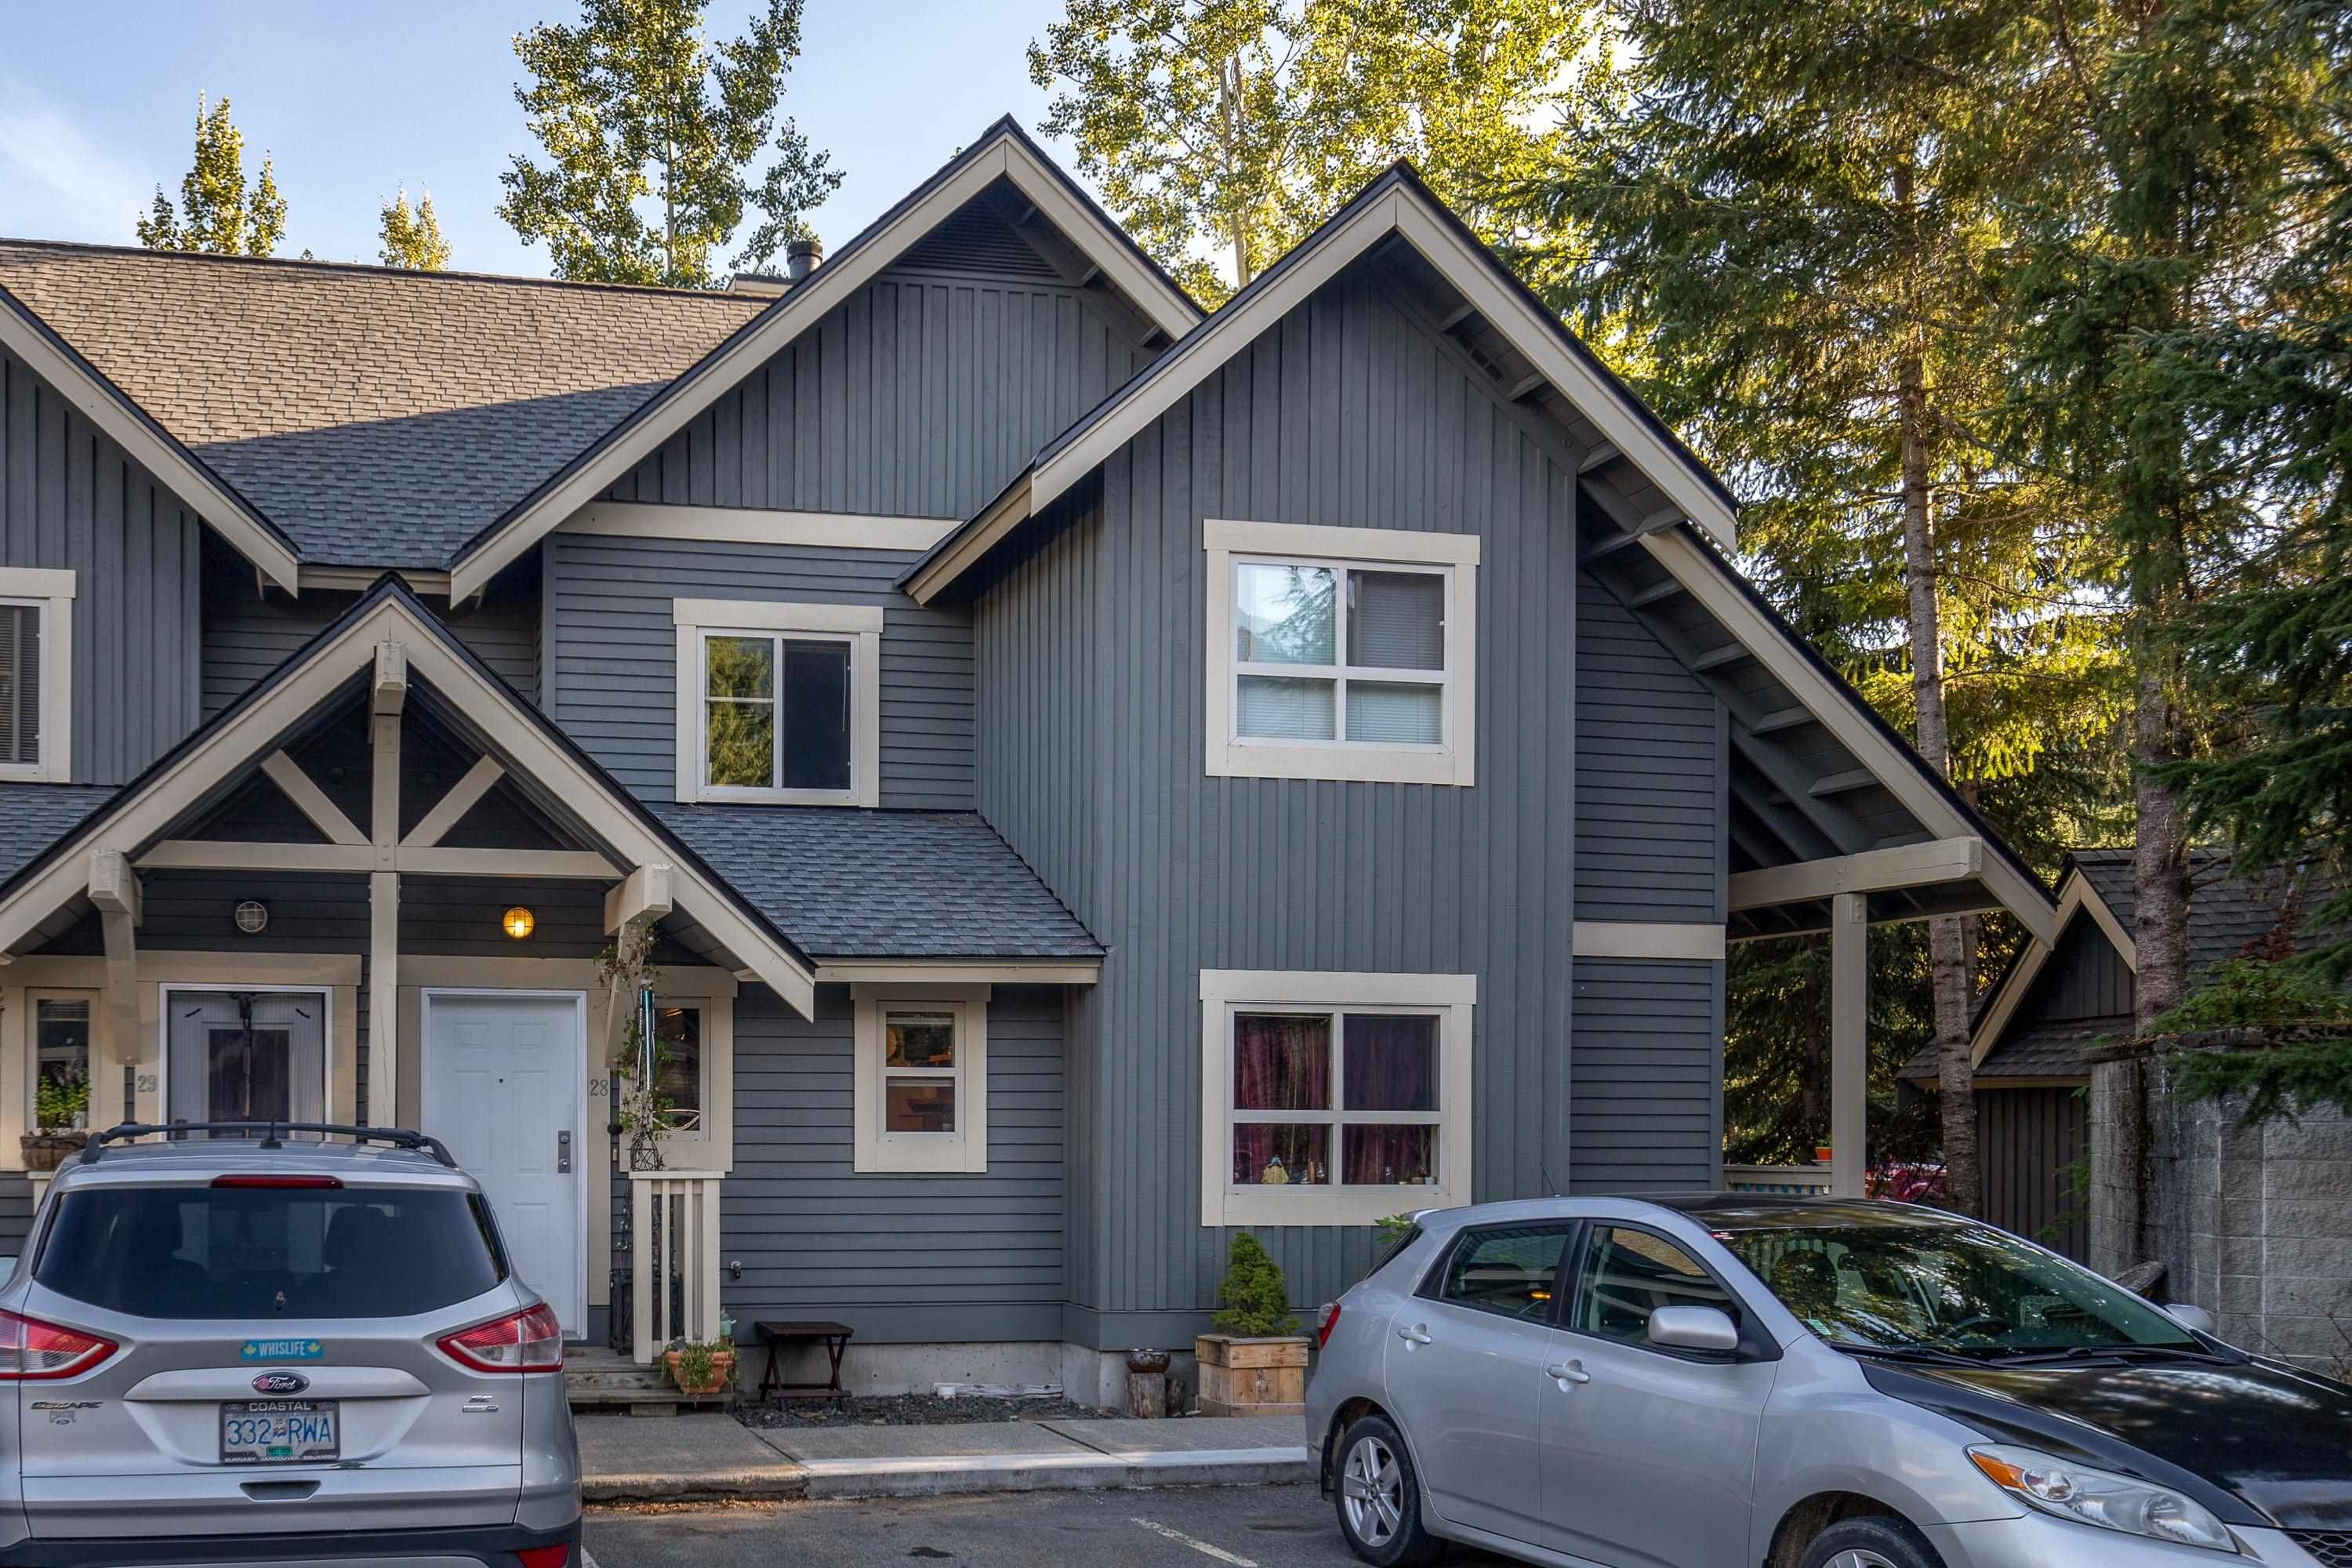 """Main Photo: 28 2720 CHEAKAMUS Way in Whistler: Bayshores Townhouse for sale in """"EAGLECREST"""" : MLS®# R2617757"""